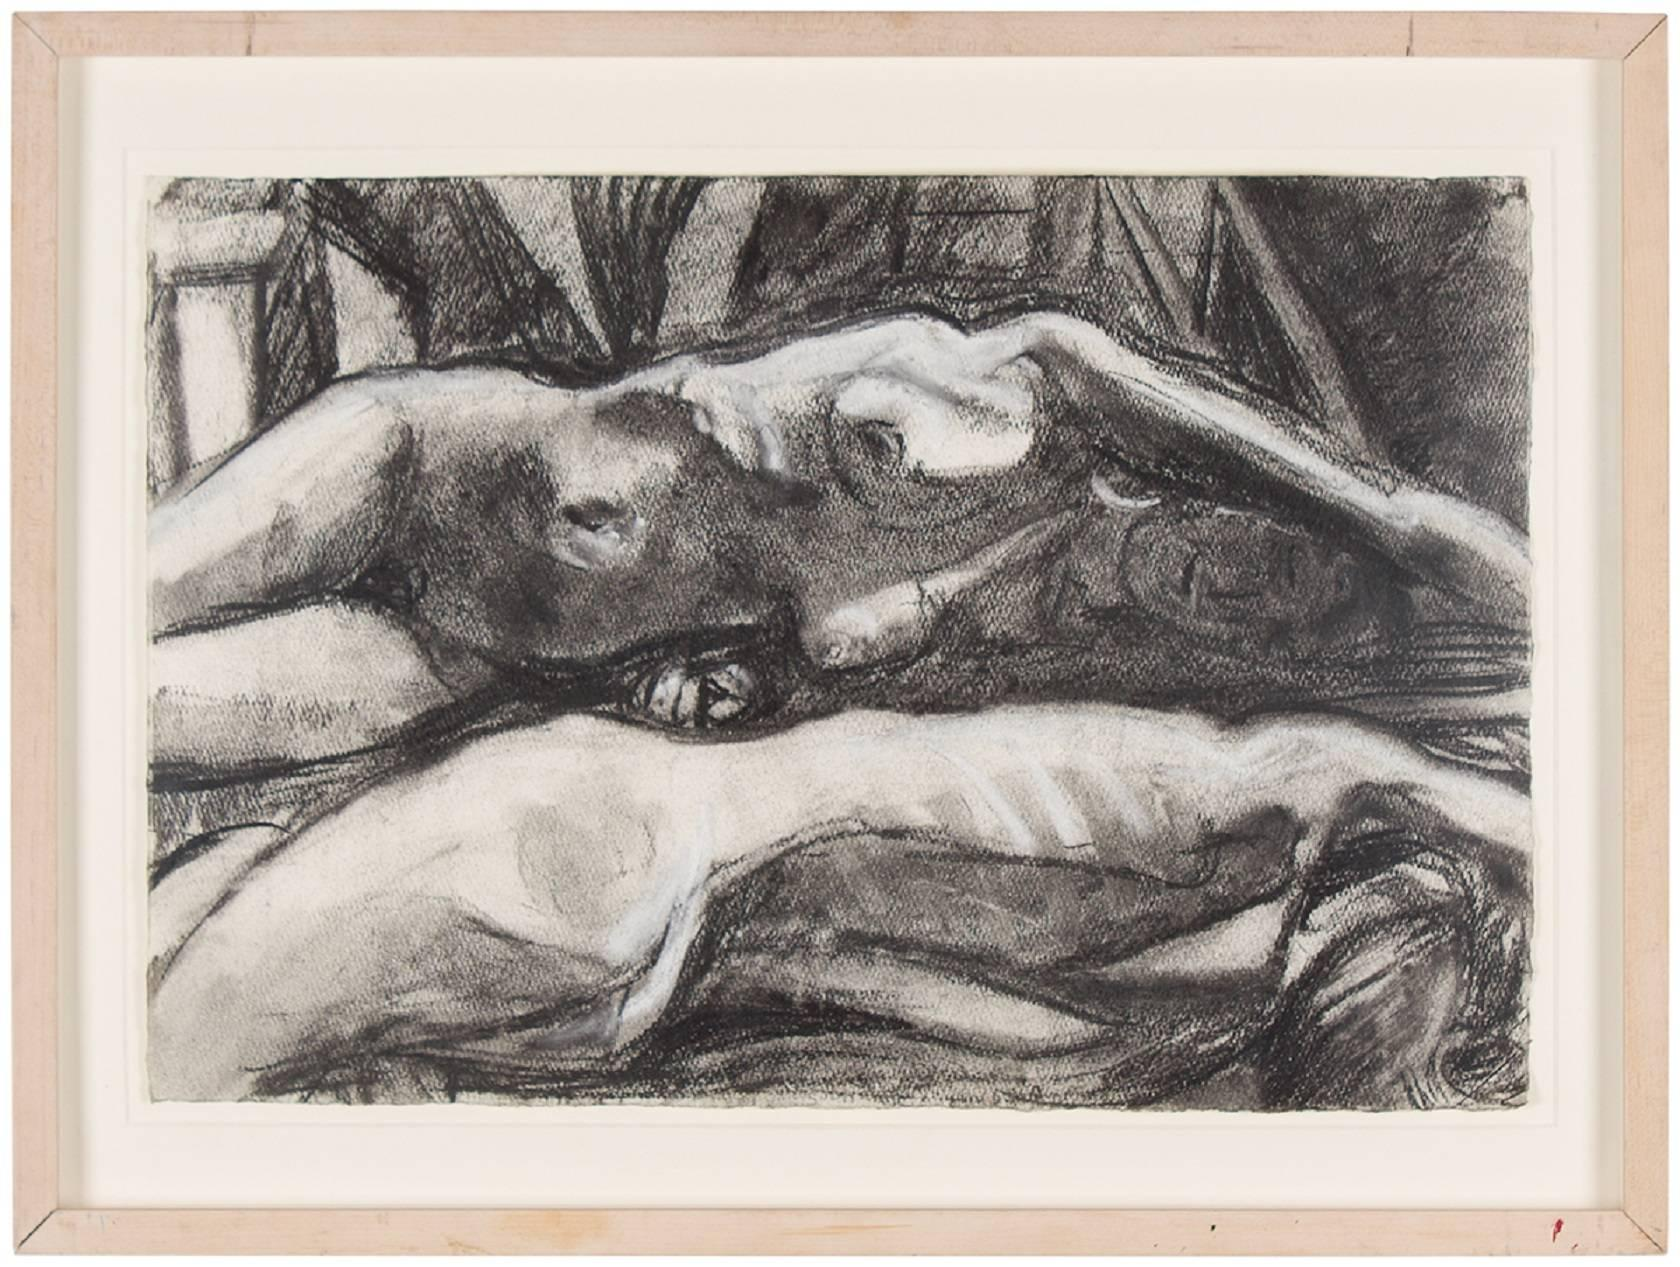 Untitled (7) Figural Expressionist Nude Charcoal Drawing